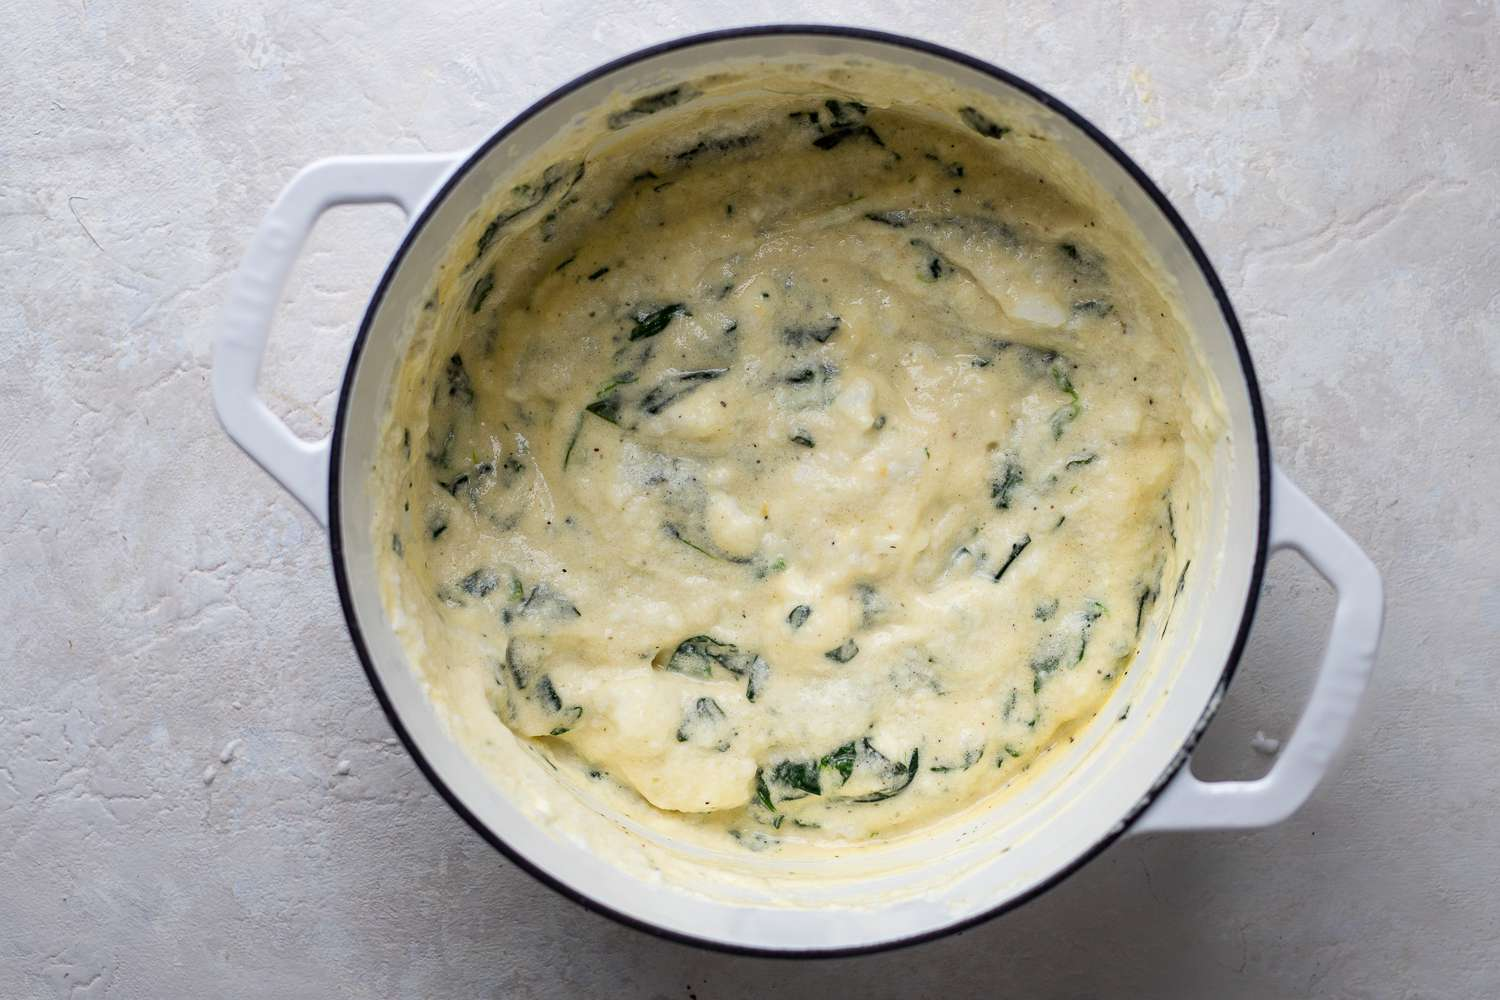 add the remaining egg white mixture to the spinach mixture